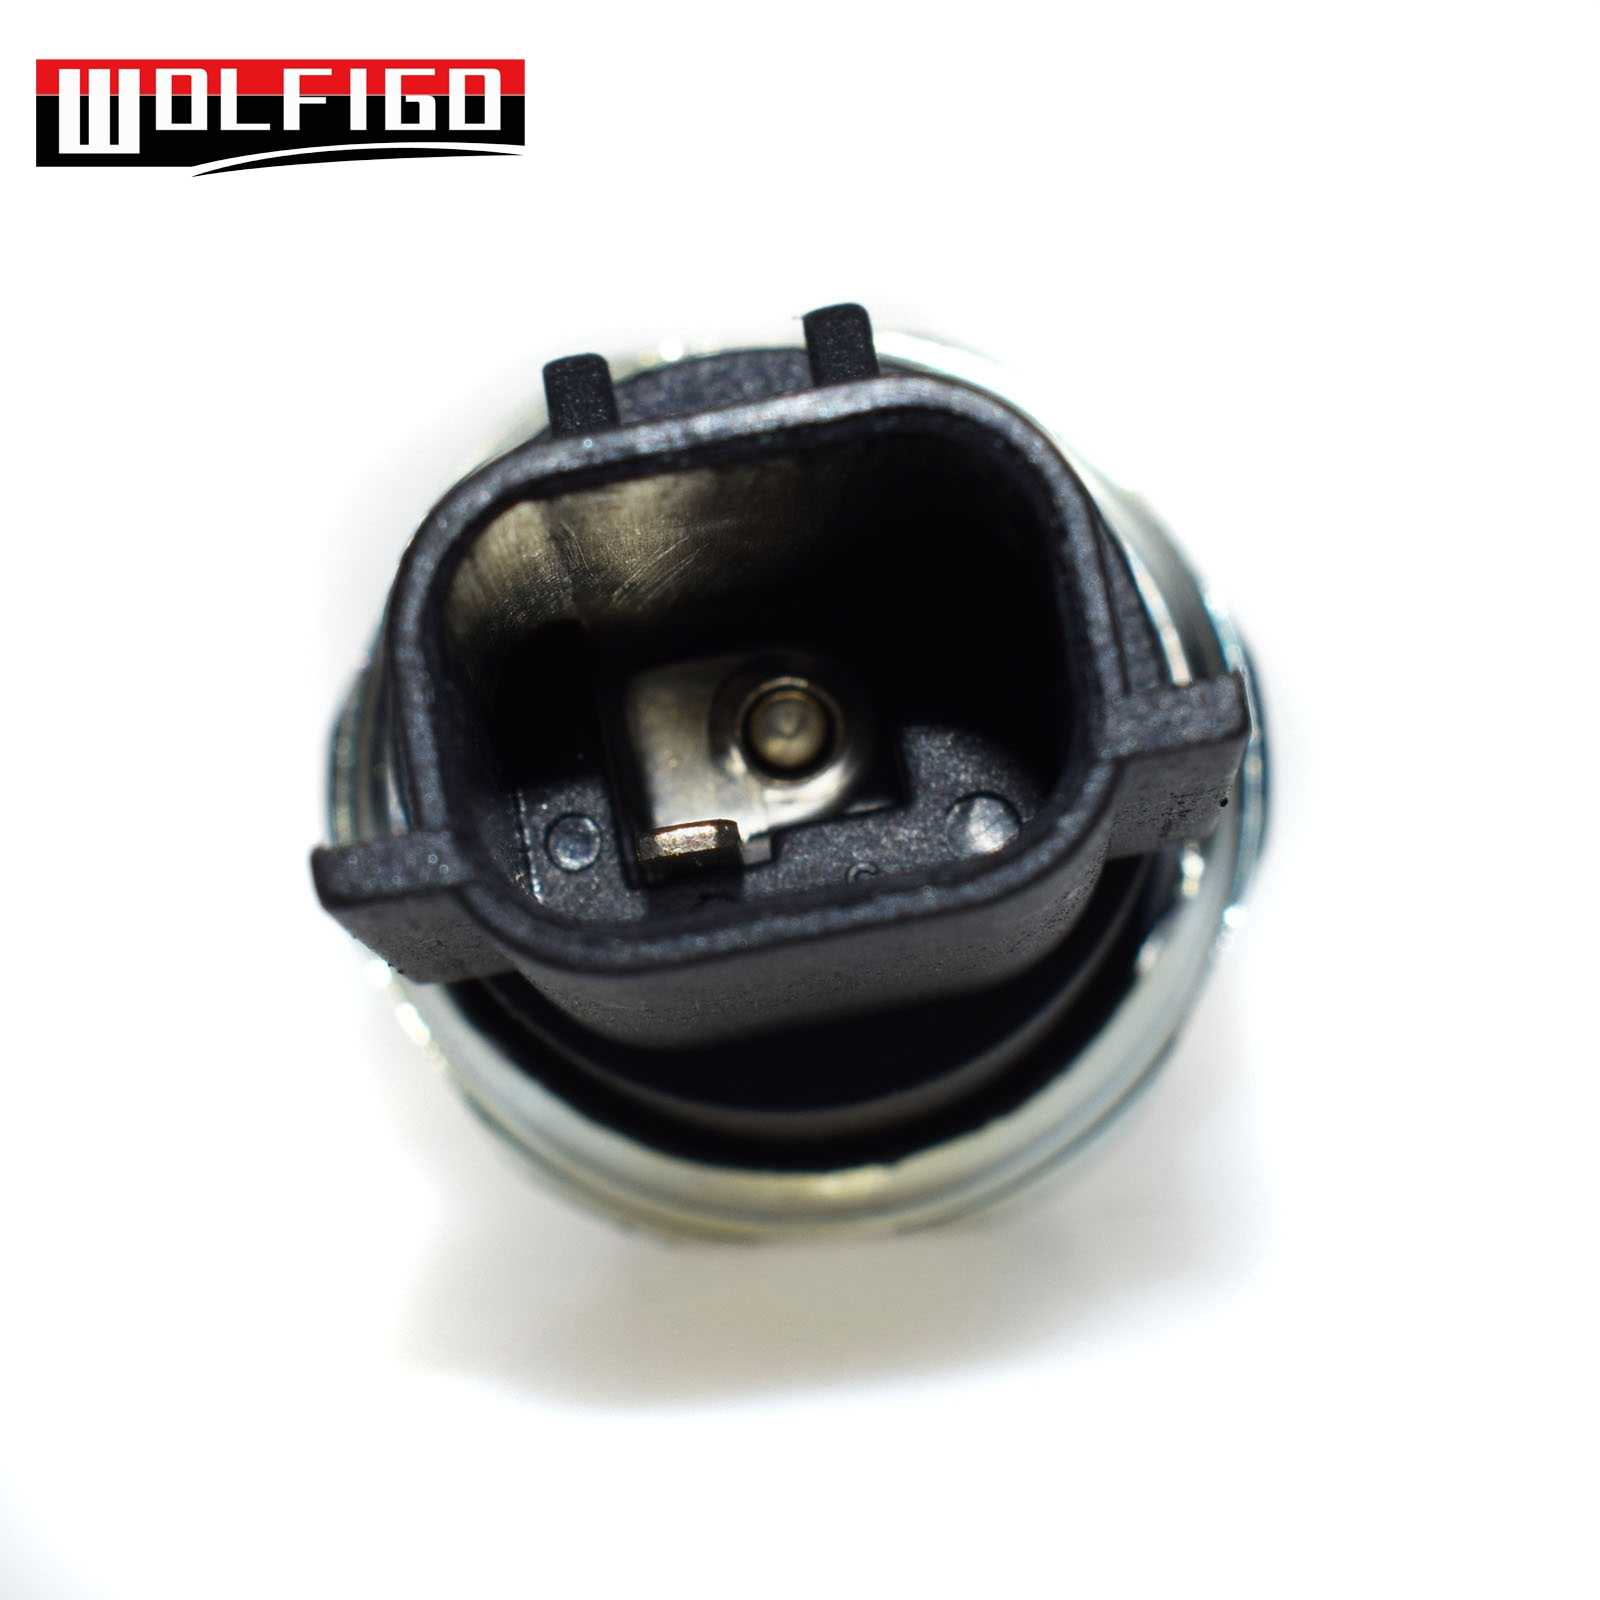 small resolution of  wolfigo new engine oil pressure switch sender for dodge neon voyager chrysler ps287t ps287